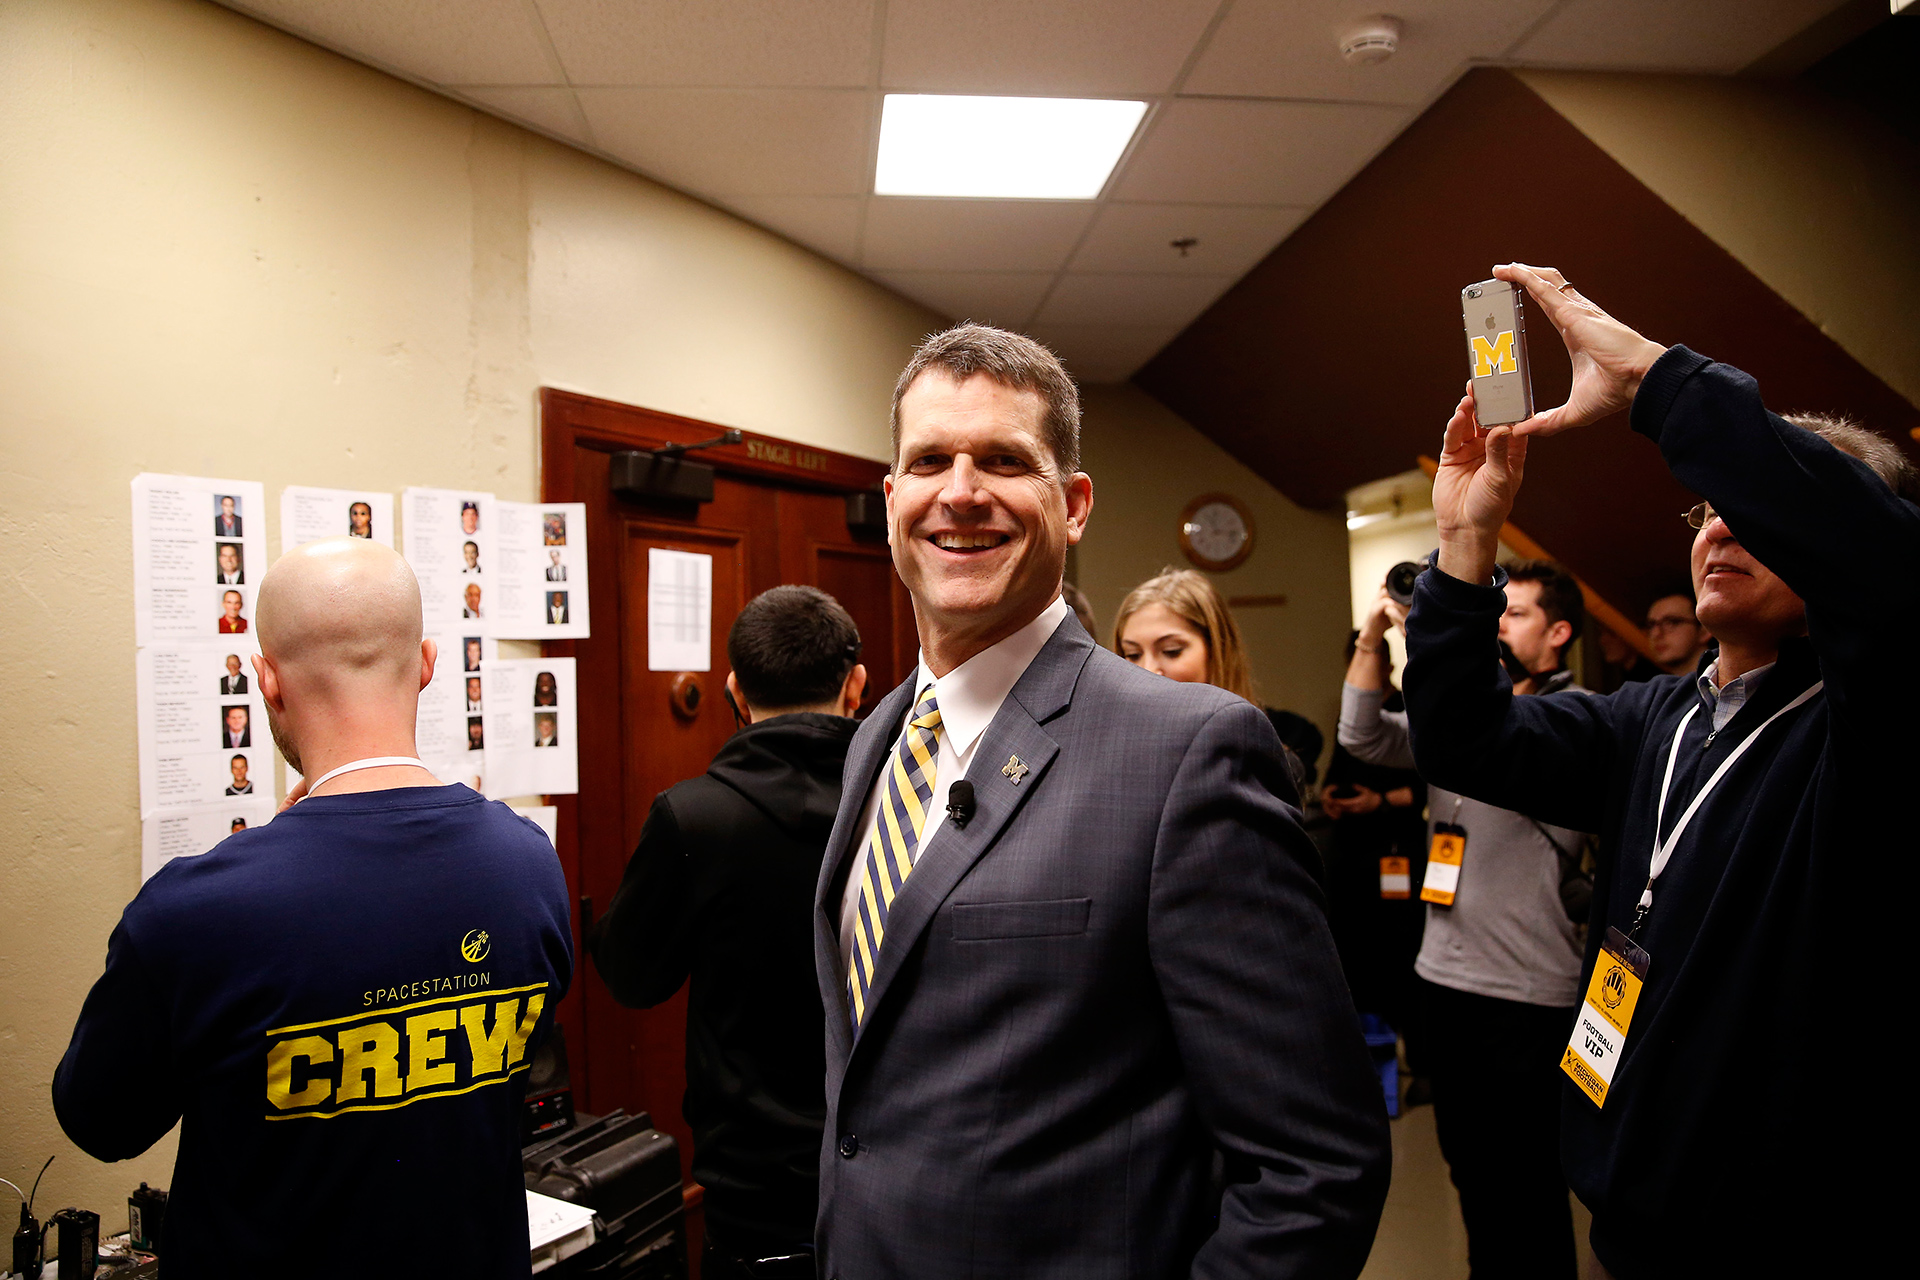 Coach Harbaugh is all smiles backstage.